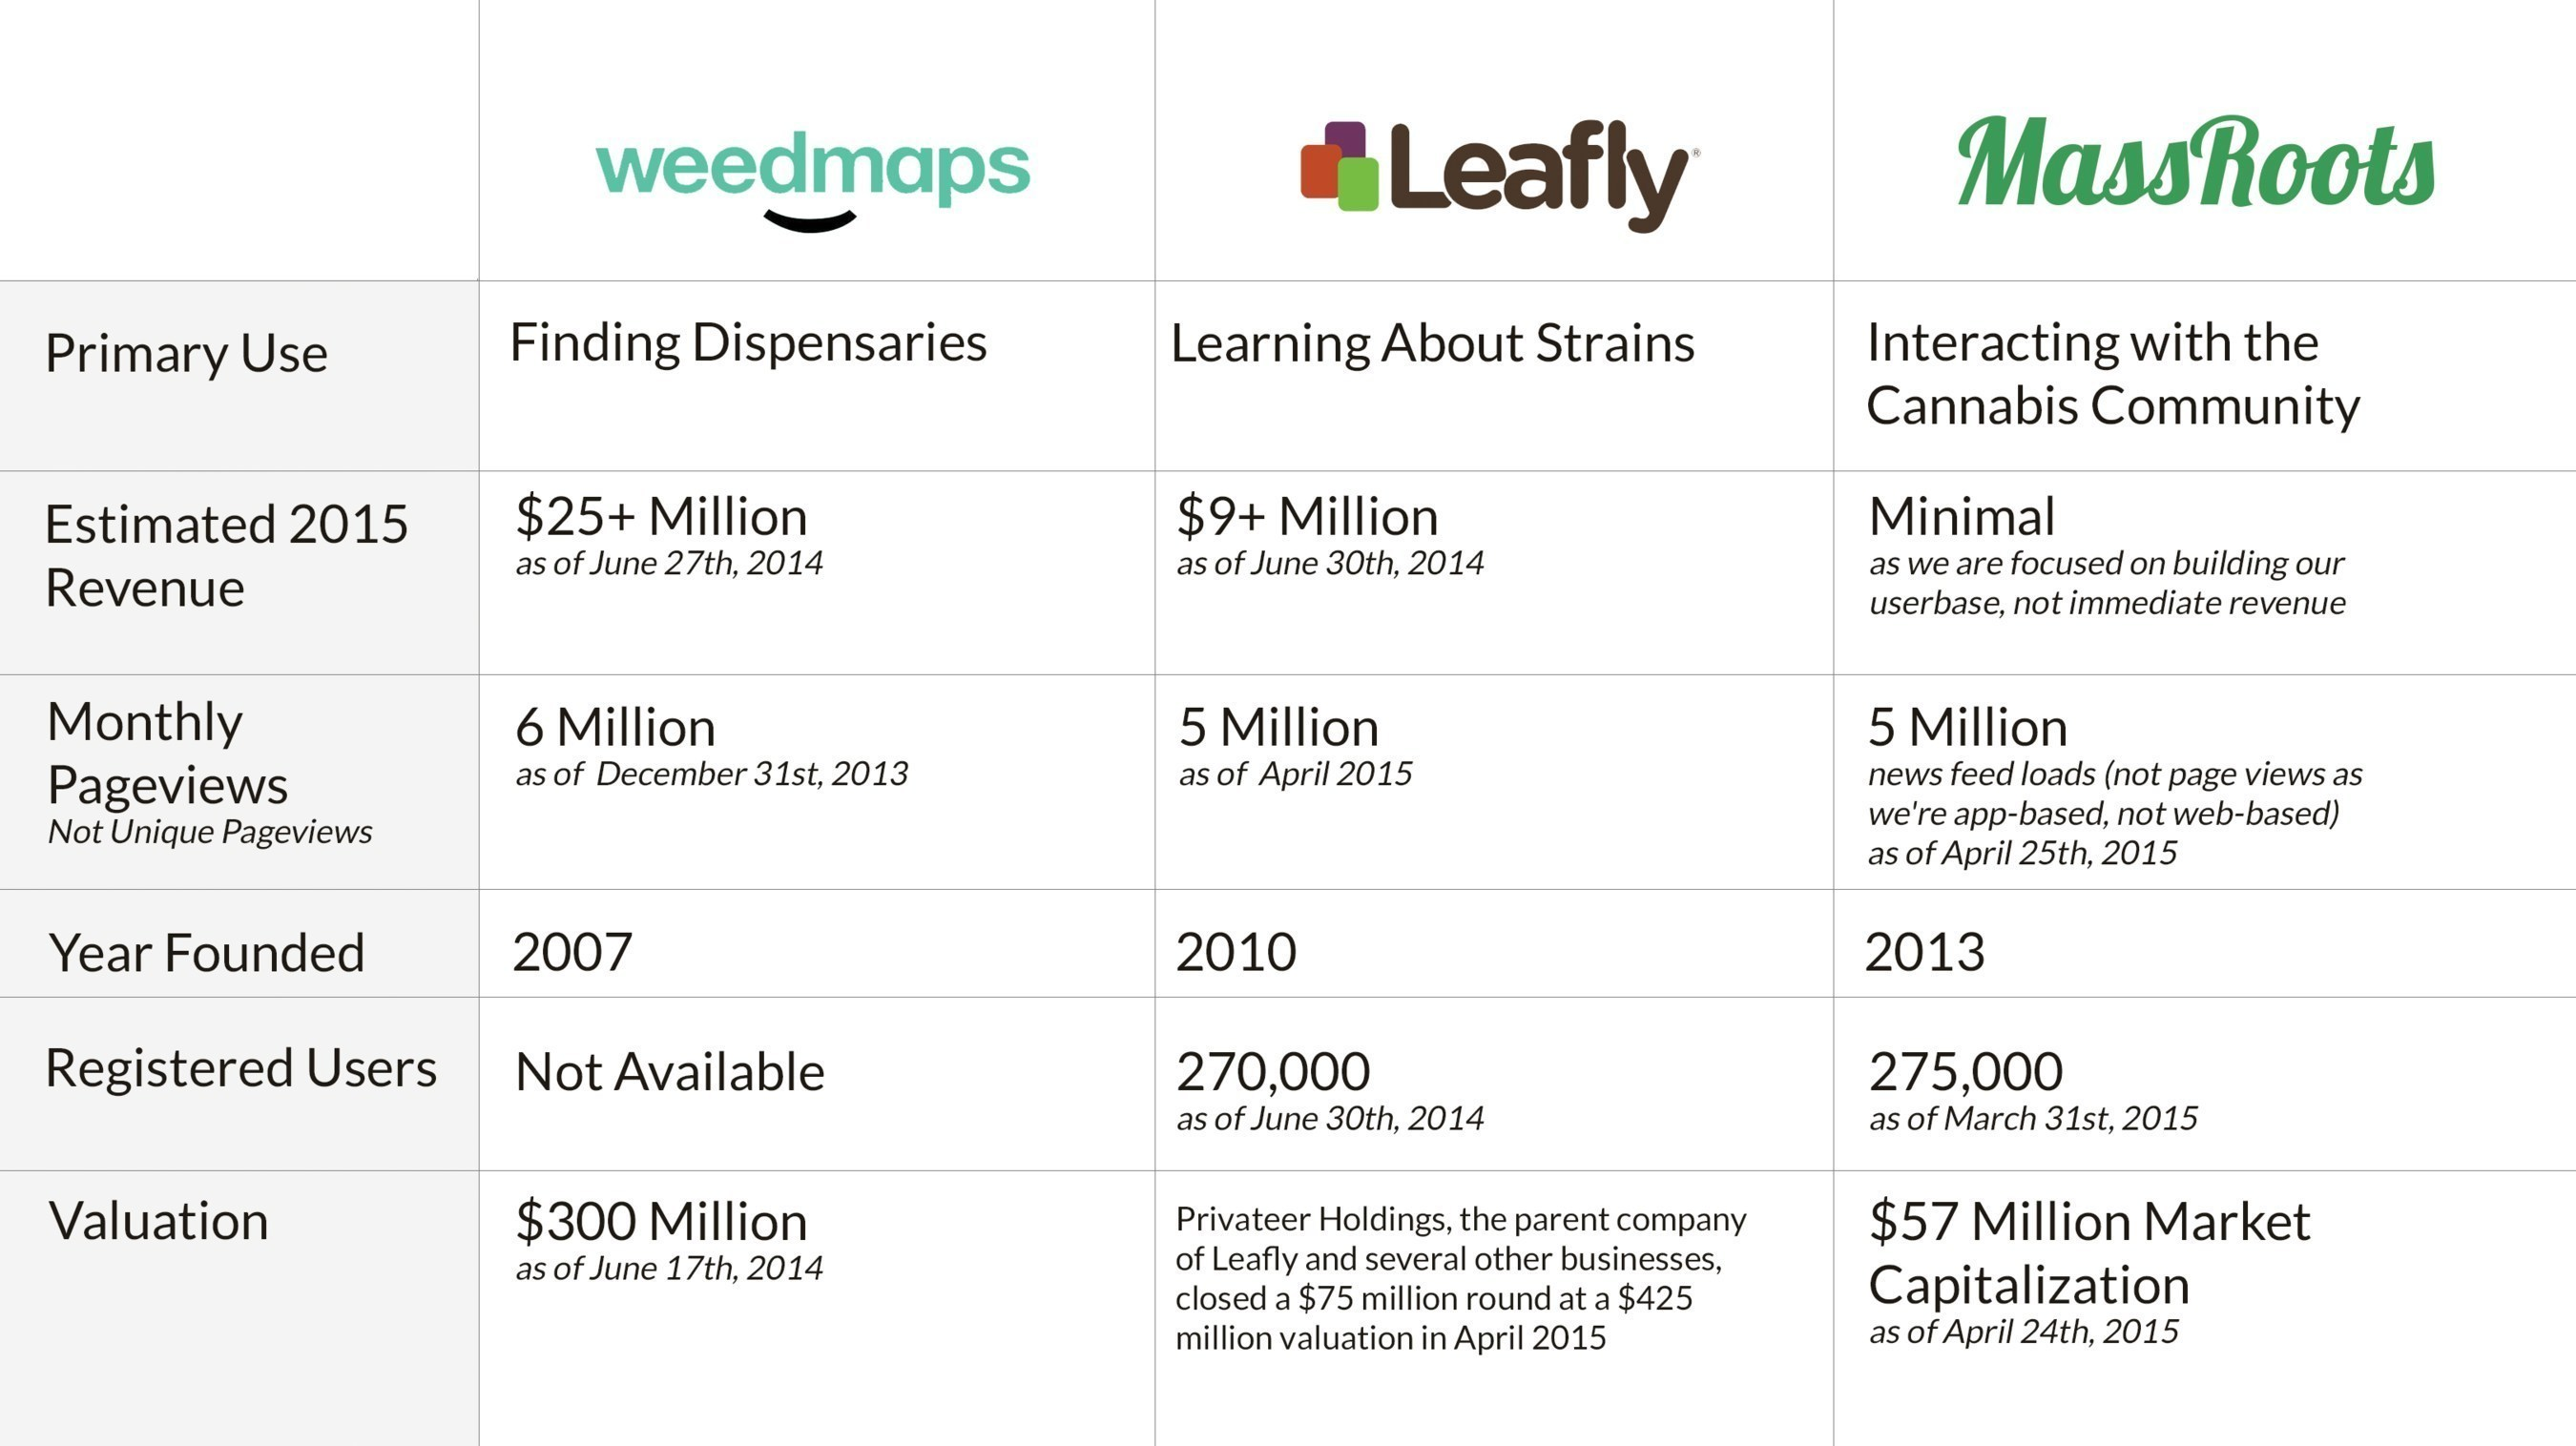 MassRoots' closest competitors are Leafly and WeedMaps, a strain resource guide and dispensary locator, respectfully.